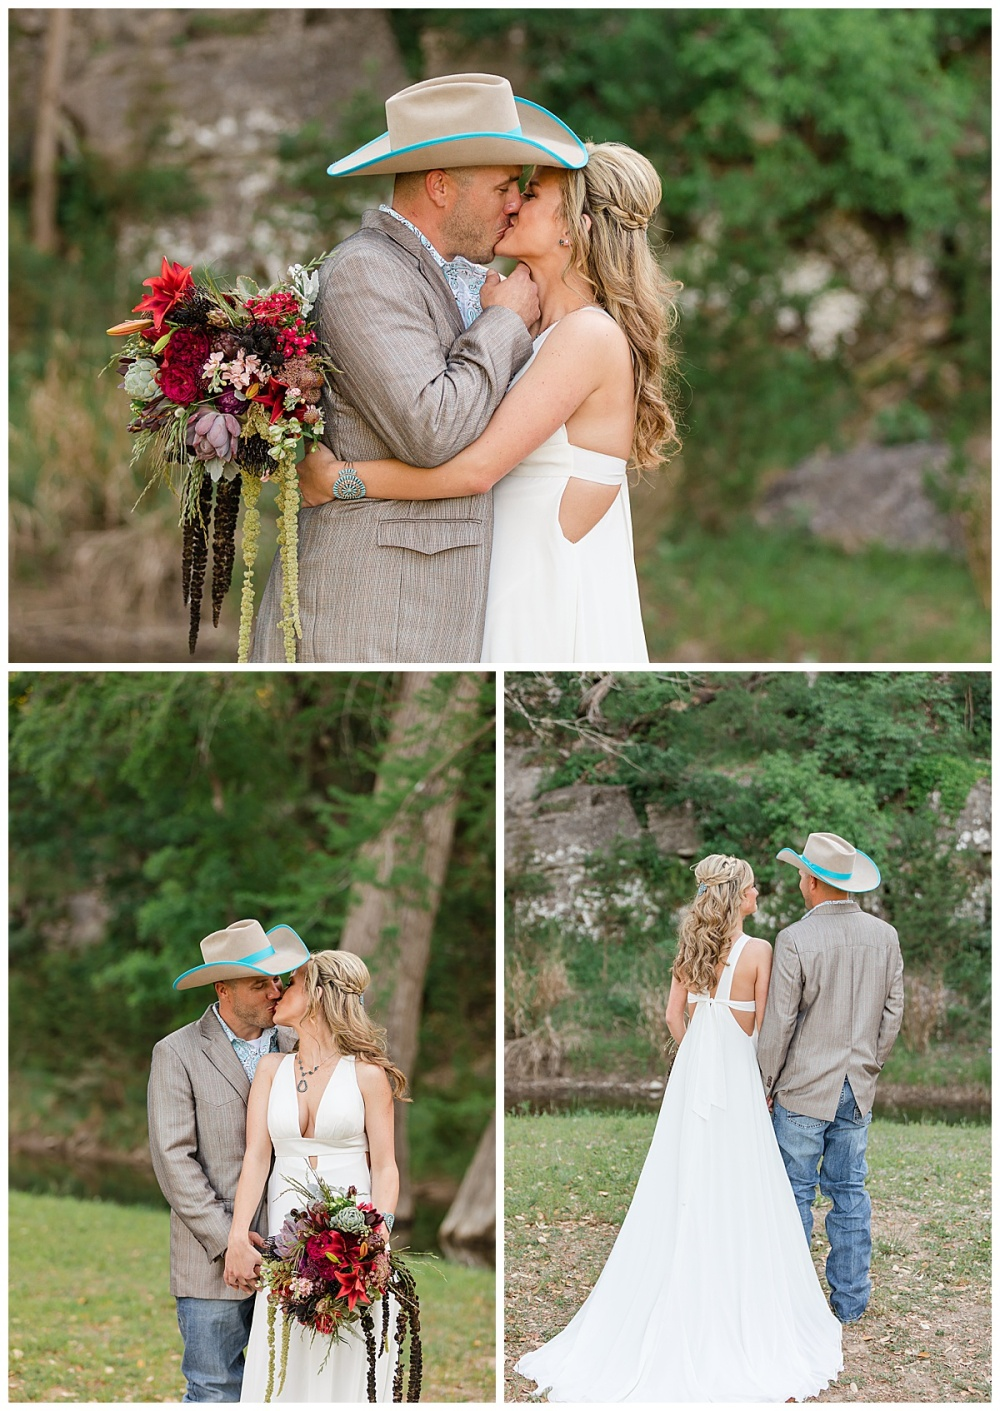 Eagle-Dancer-Ranch-Boerne-Texas-Wedding-Party-Barn-Carly-Barton-Photography_0046.jpg